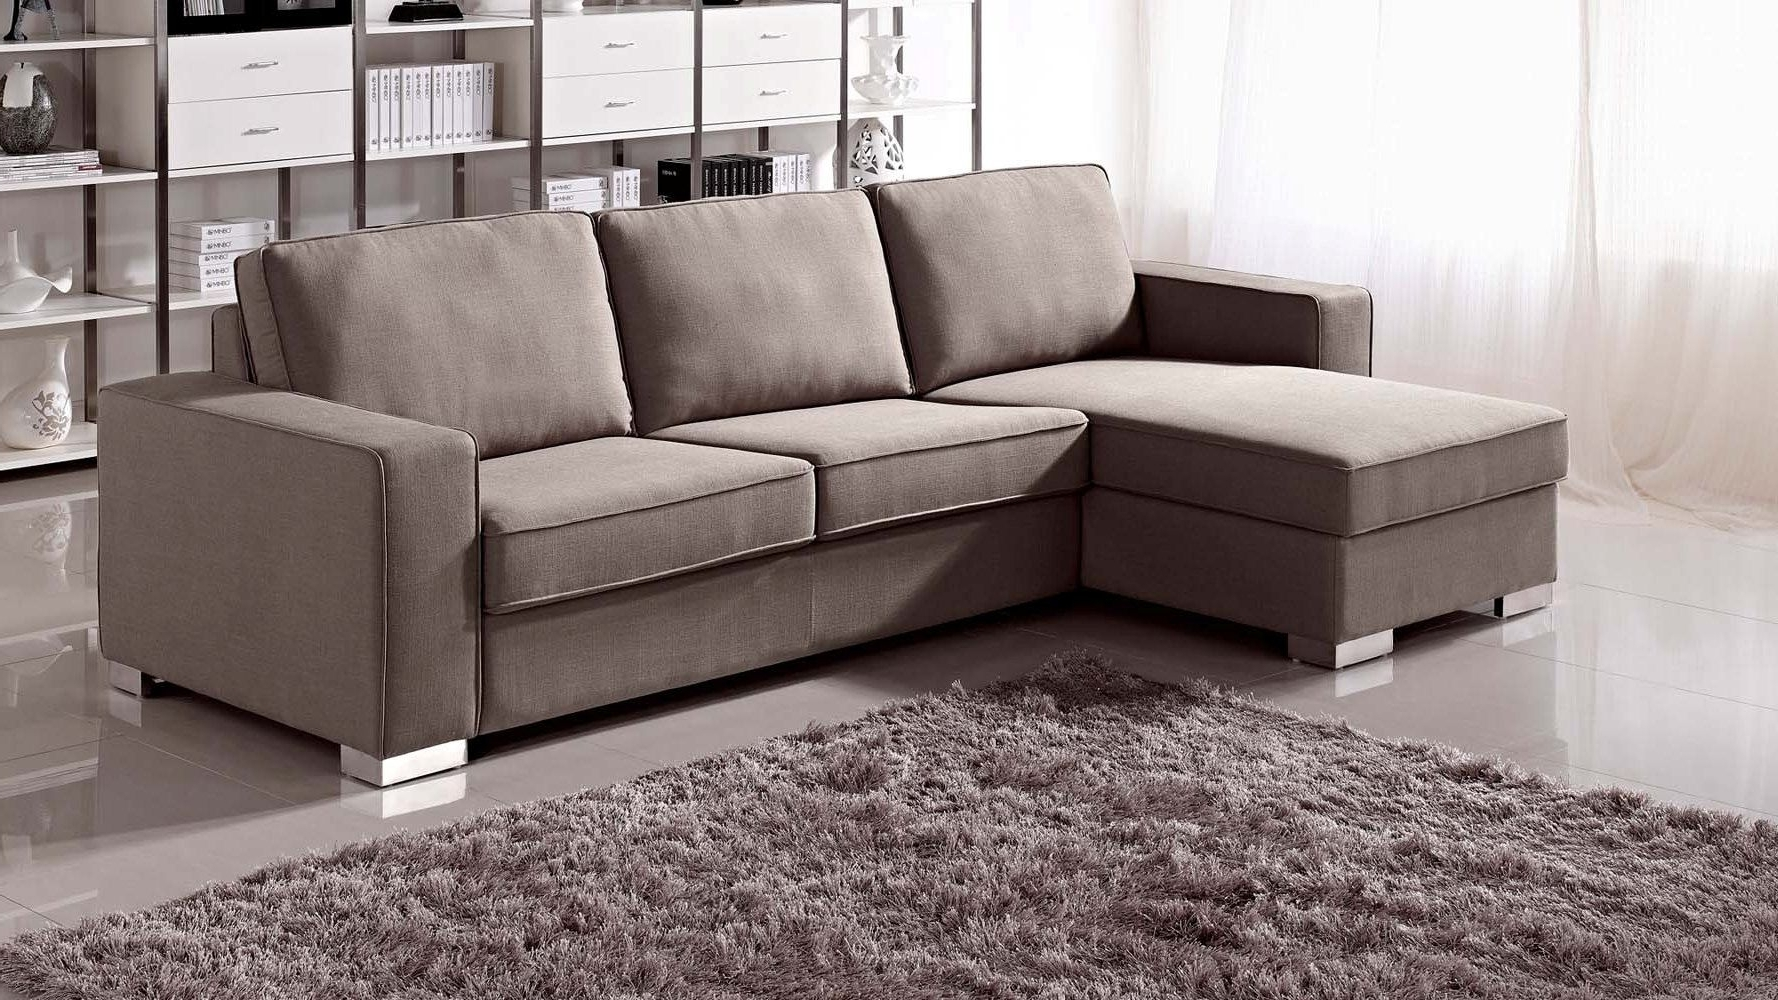 Adjustable Sectional Sofas With Queen Bed Intended For Best And Newest Sectional Sofa With Sleeper And Chaise (View 2 of 20)